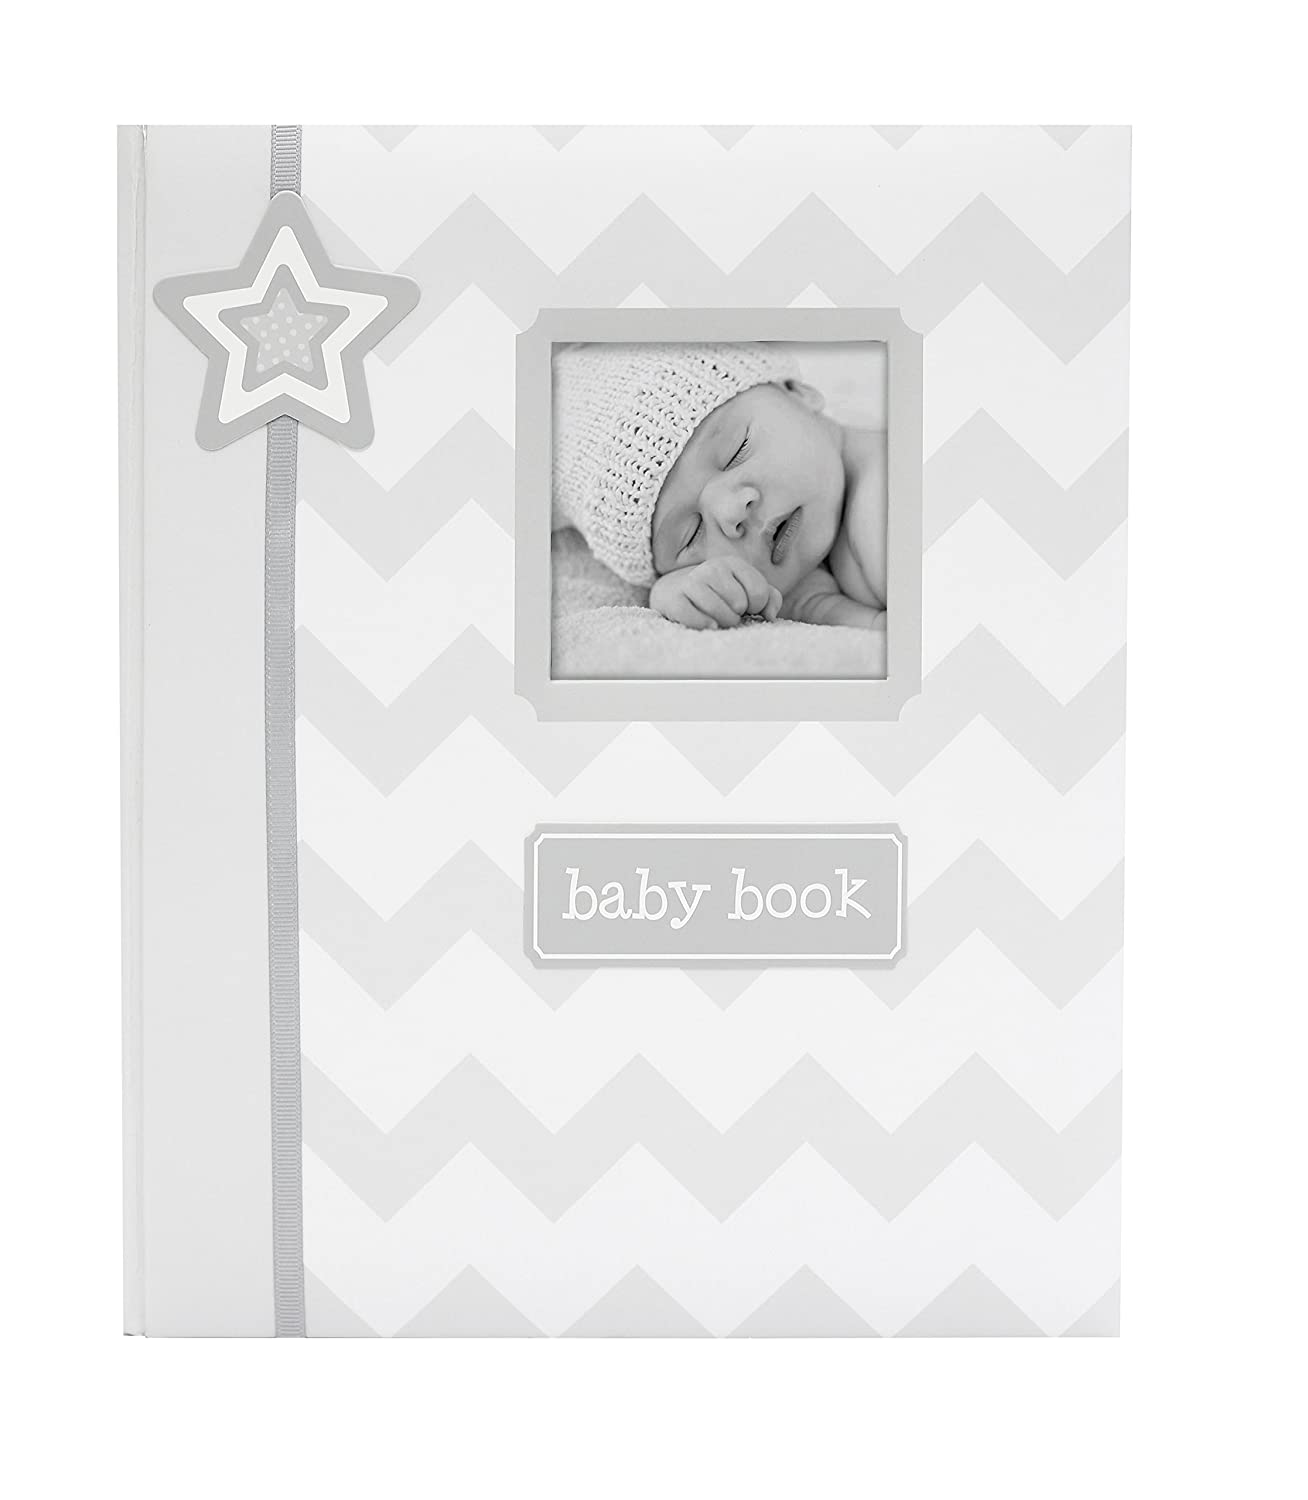 Lil' Peach Chevron Baby Memory Book, Gray Lil' Peach 93002